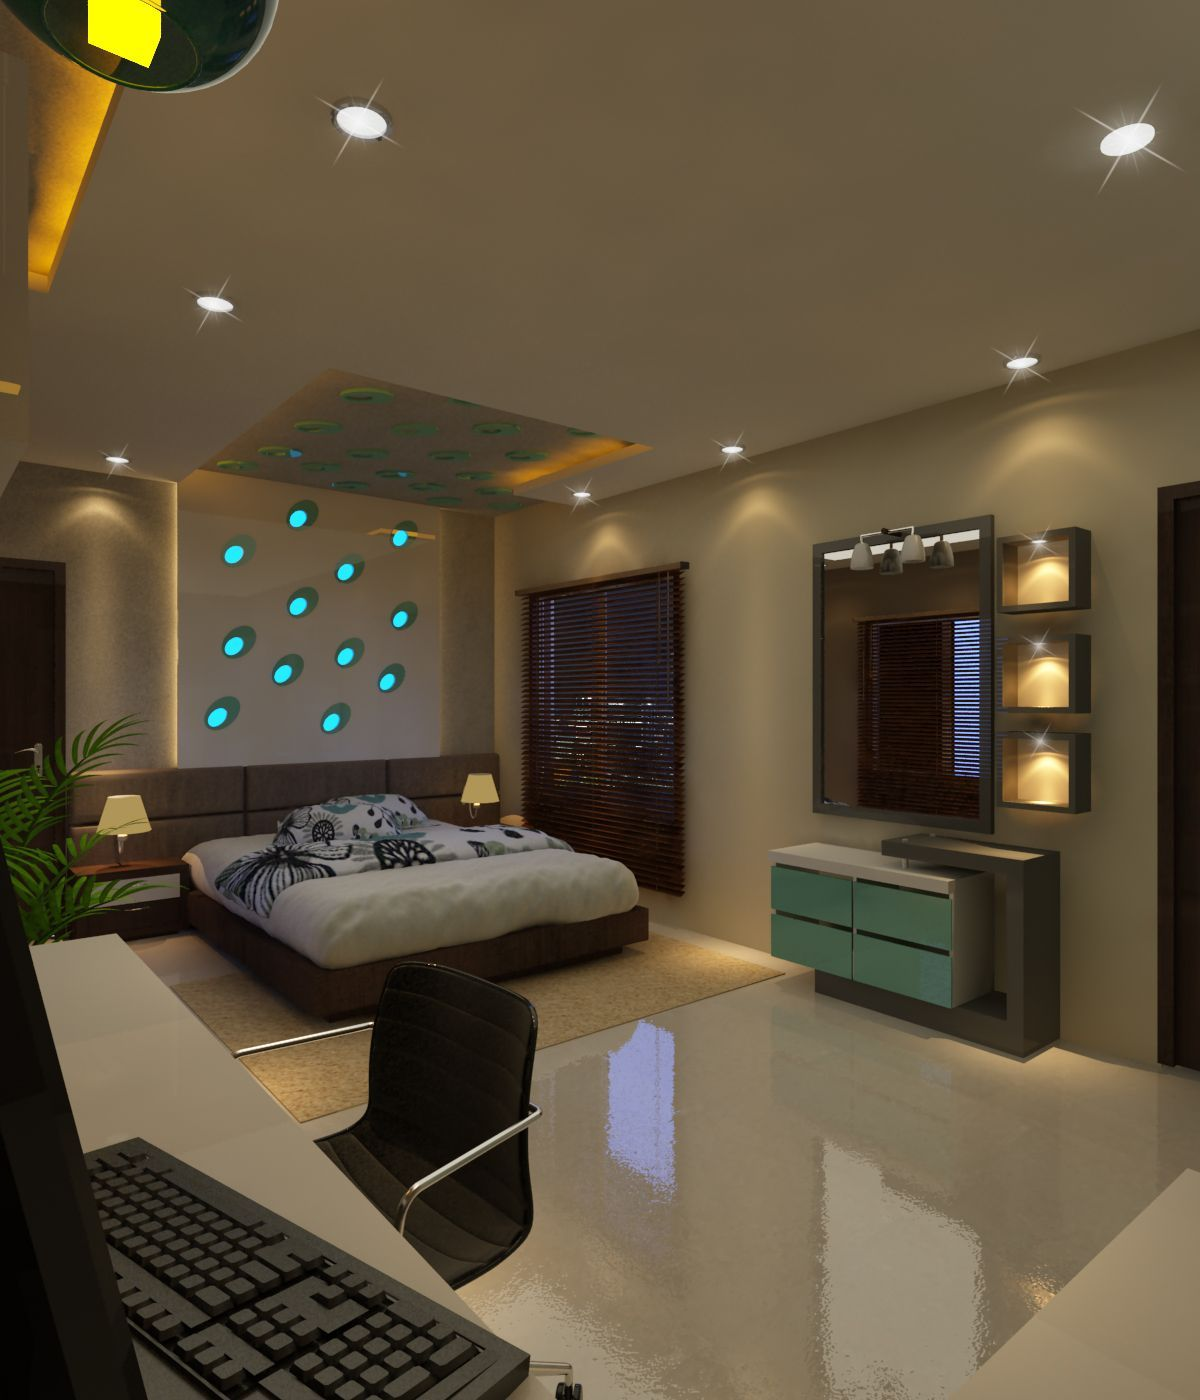 33+ Dreamy Master Bedroom Ideas And Designs That Go Beyond